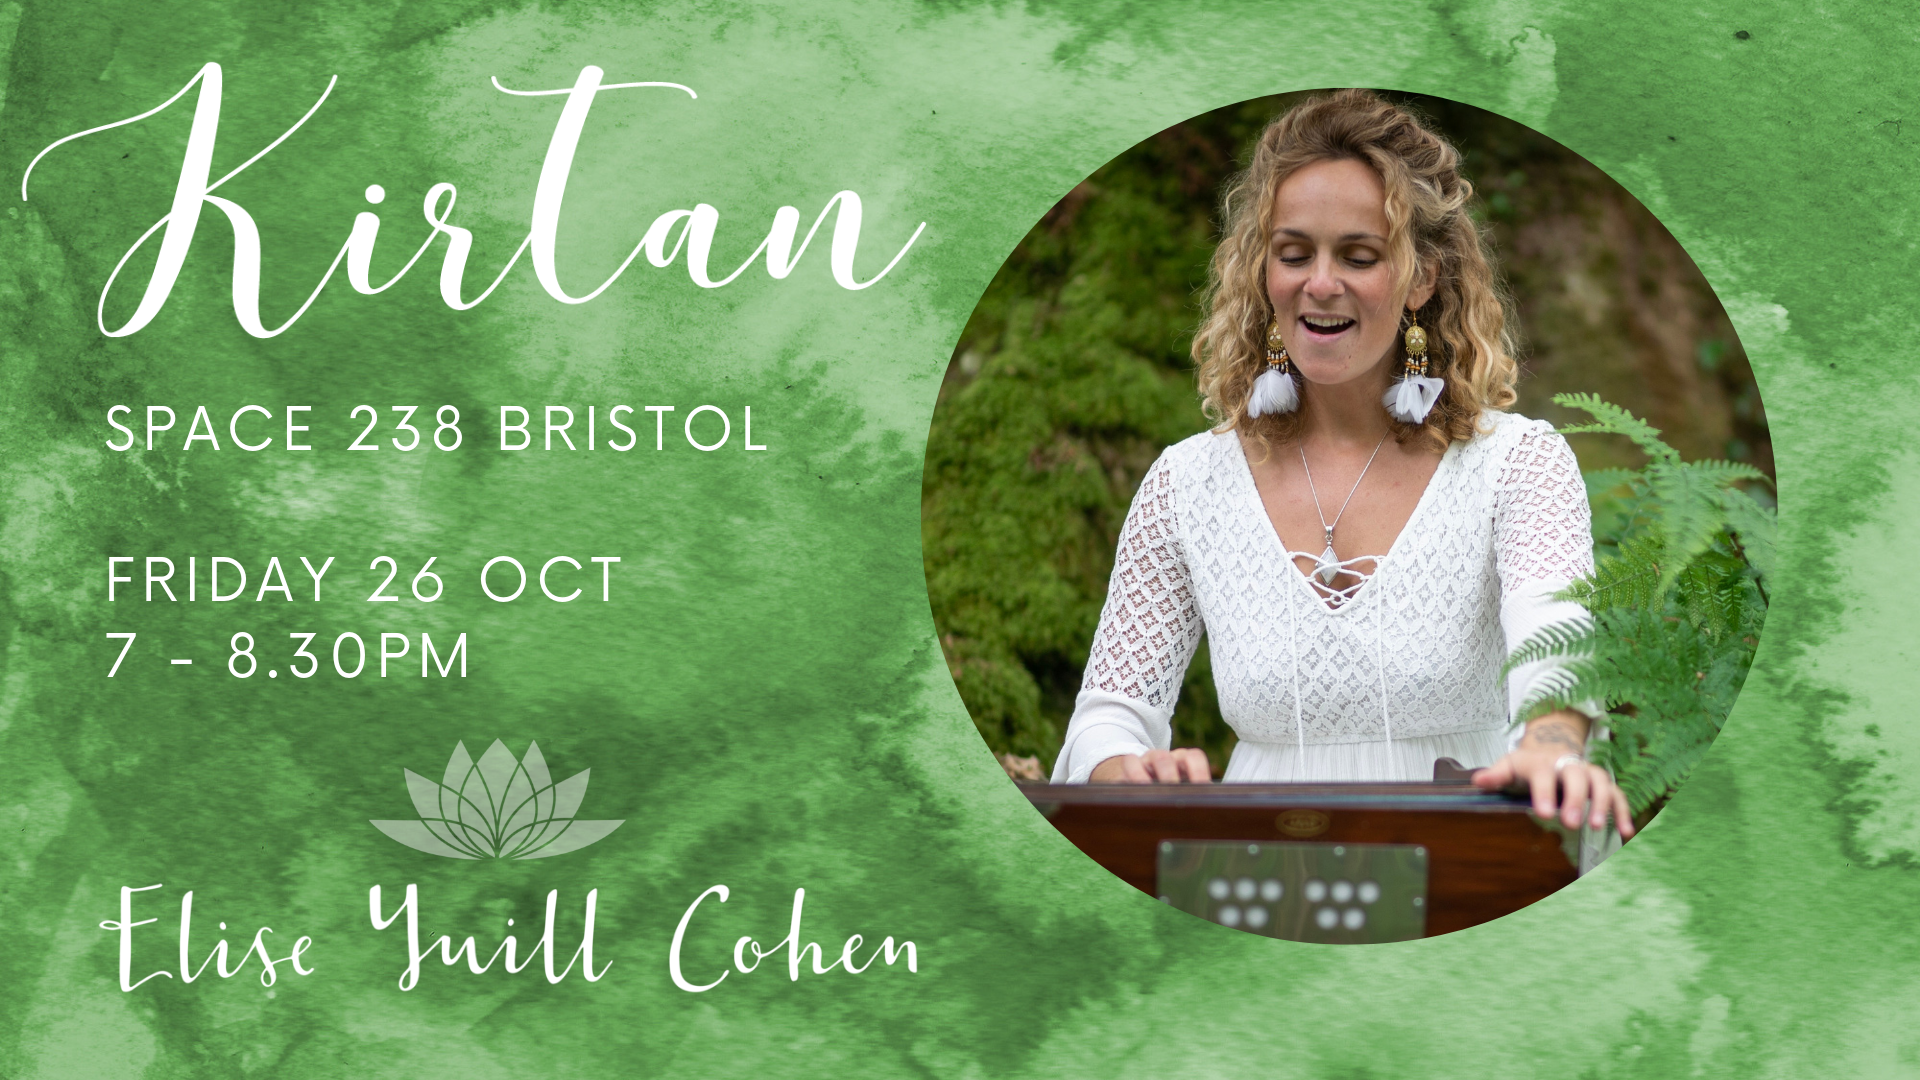 Copy of FB Event Template - KIRTAN (Bristol).png